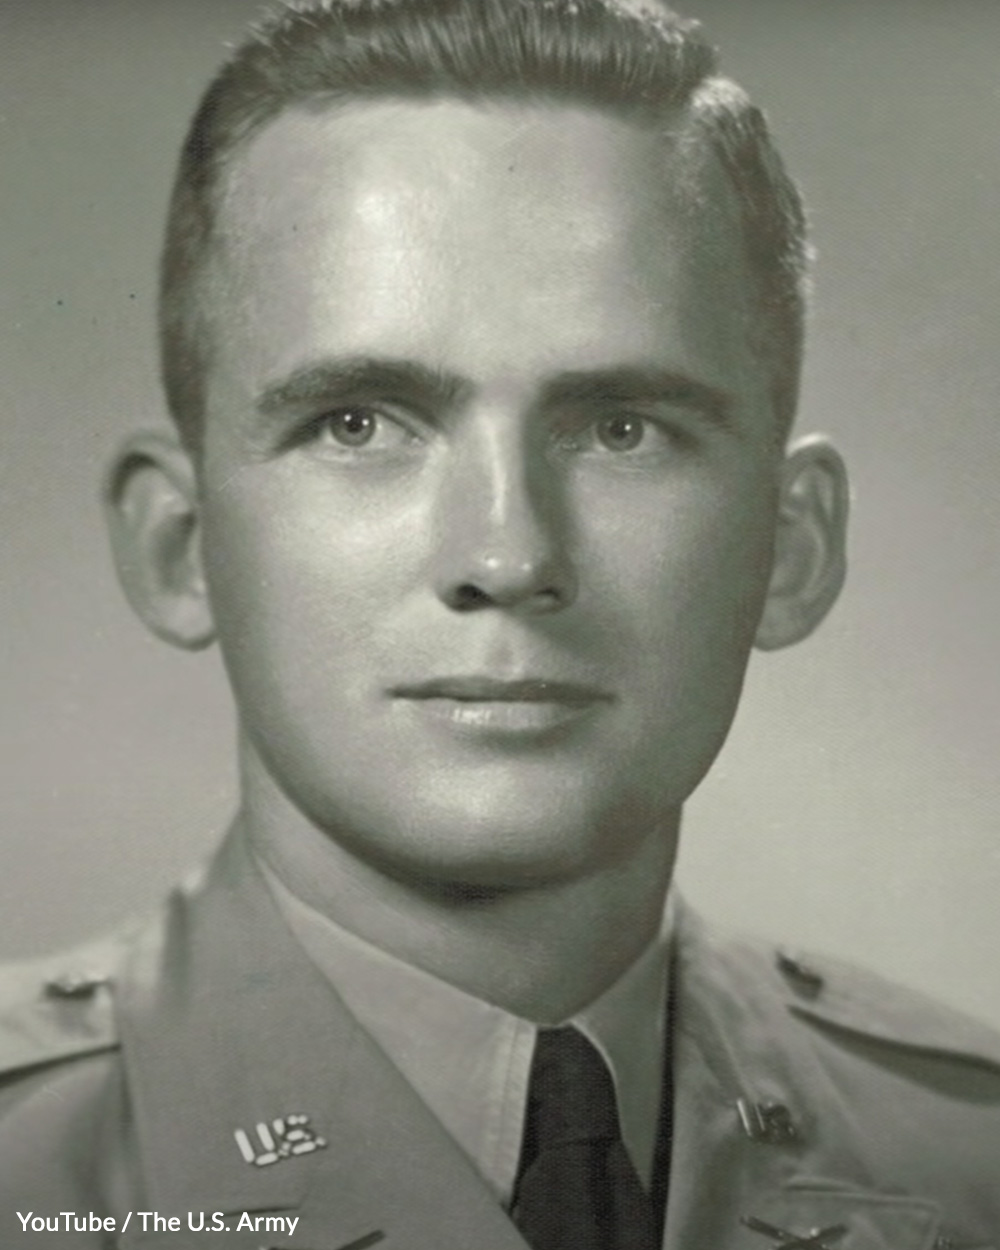 Puckett, Jr. graduated from the United States Military Academy at West Point in 1949.